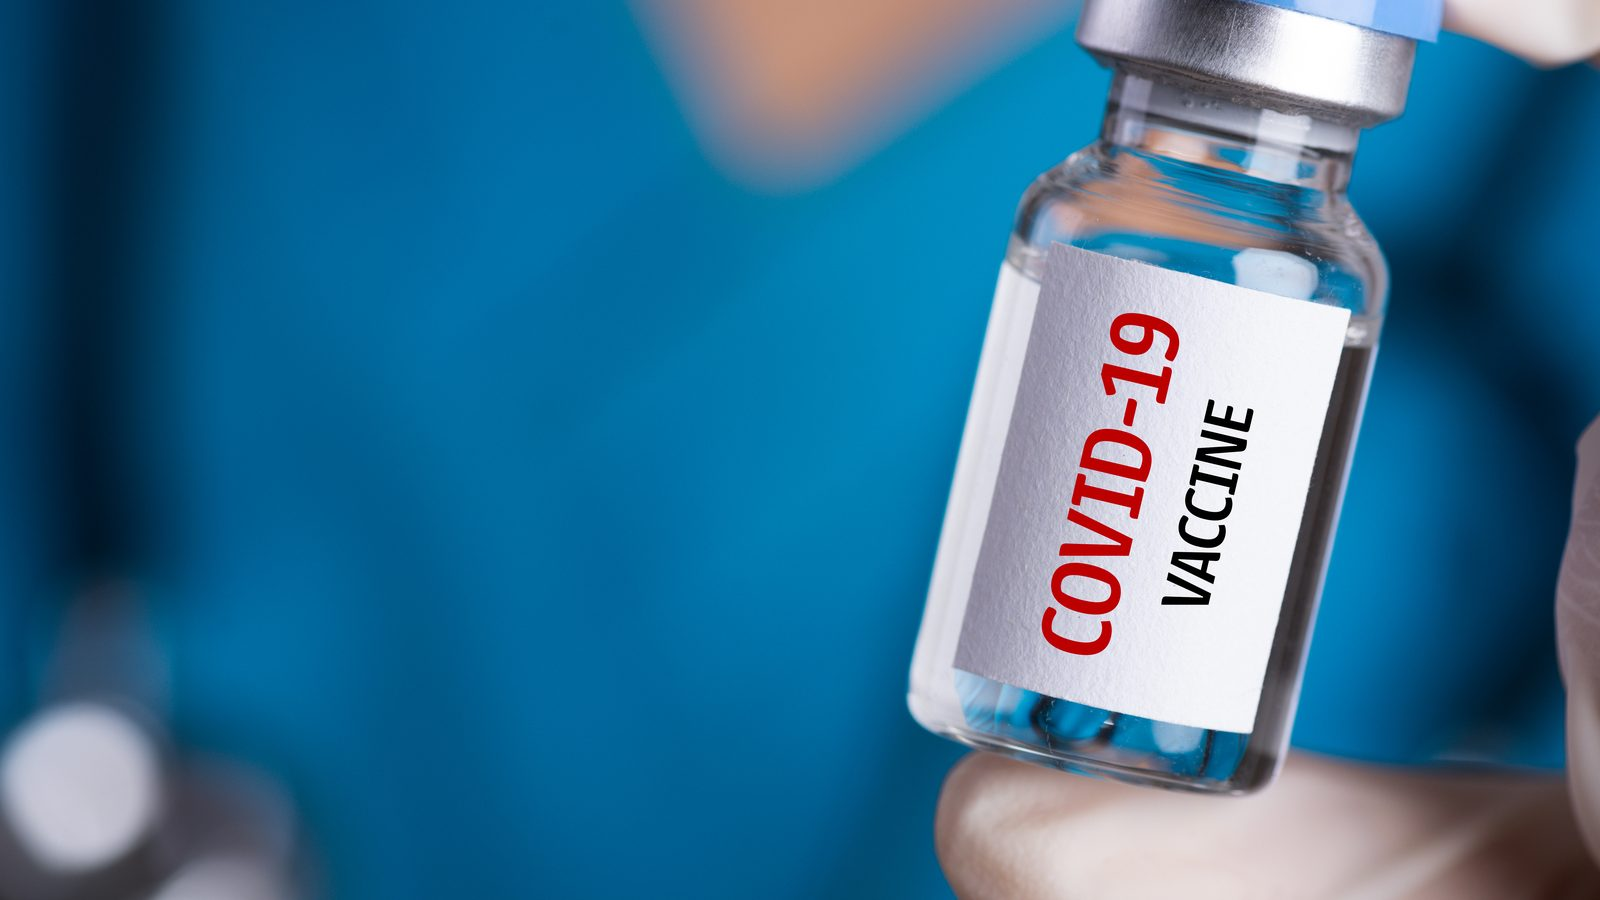 Over 200 Queen's University medical students volunteer to administer COVID-19 vaccines